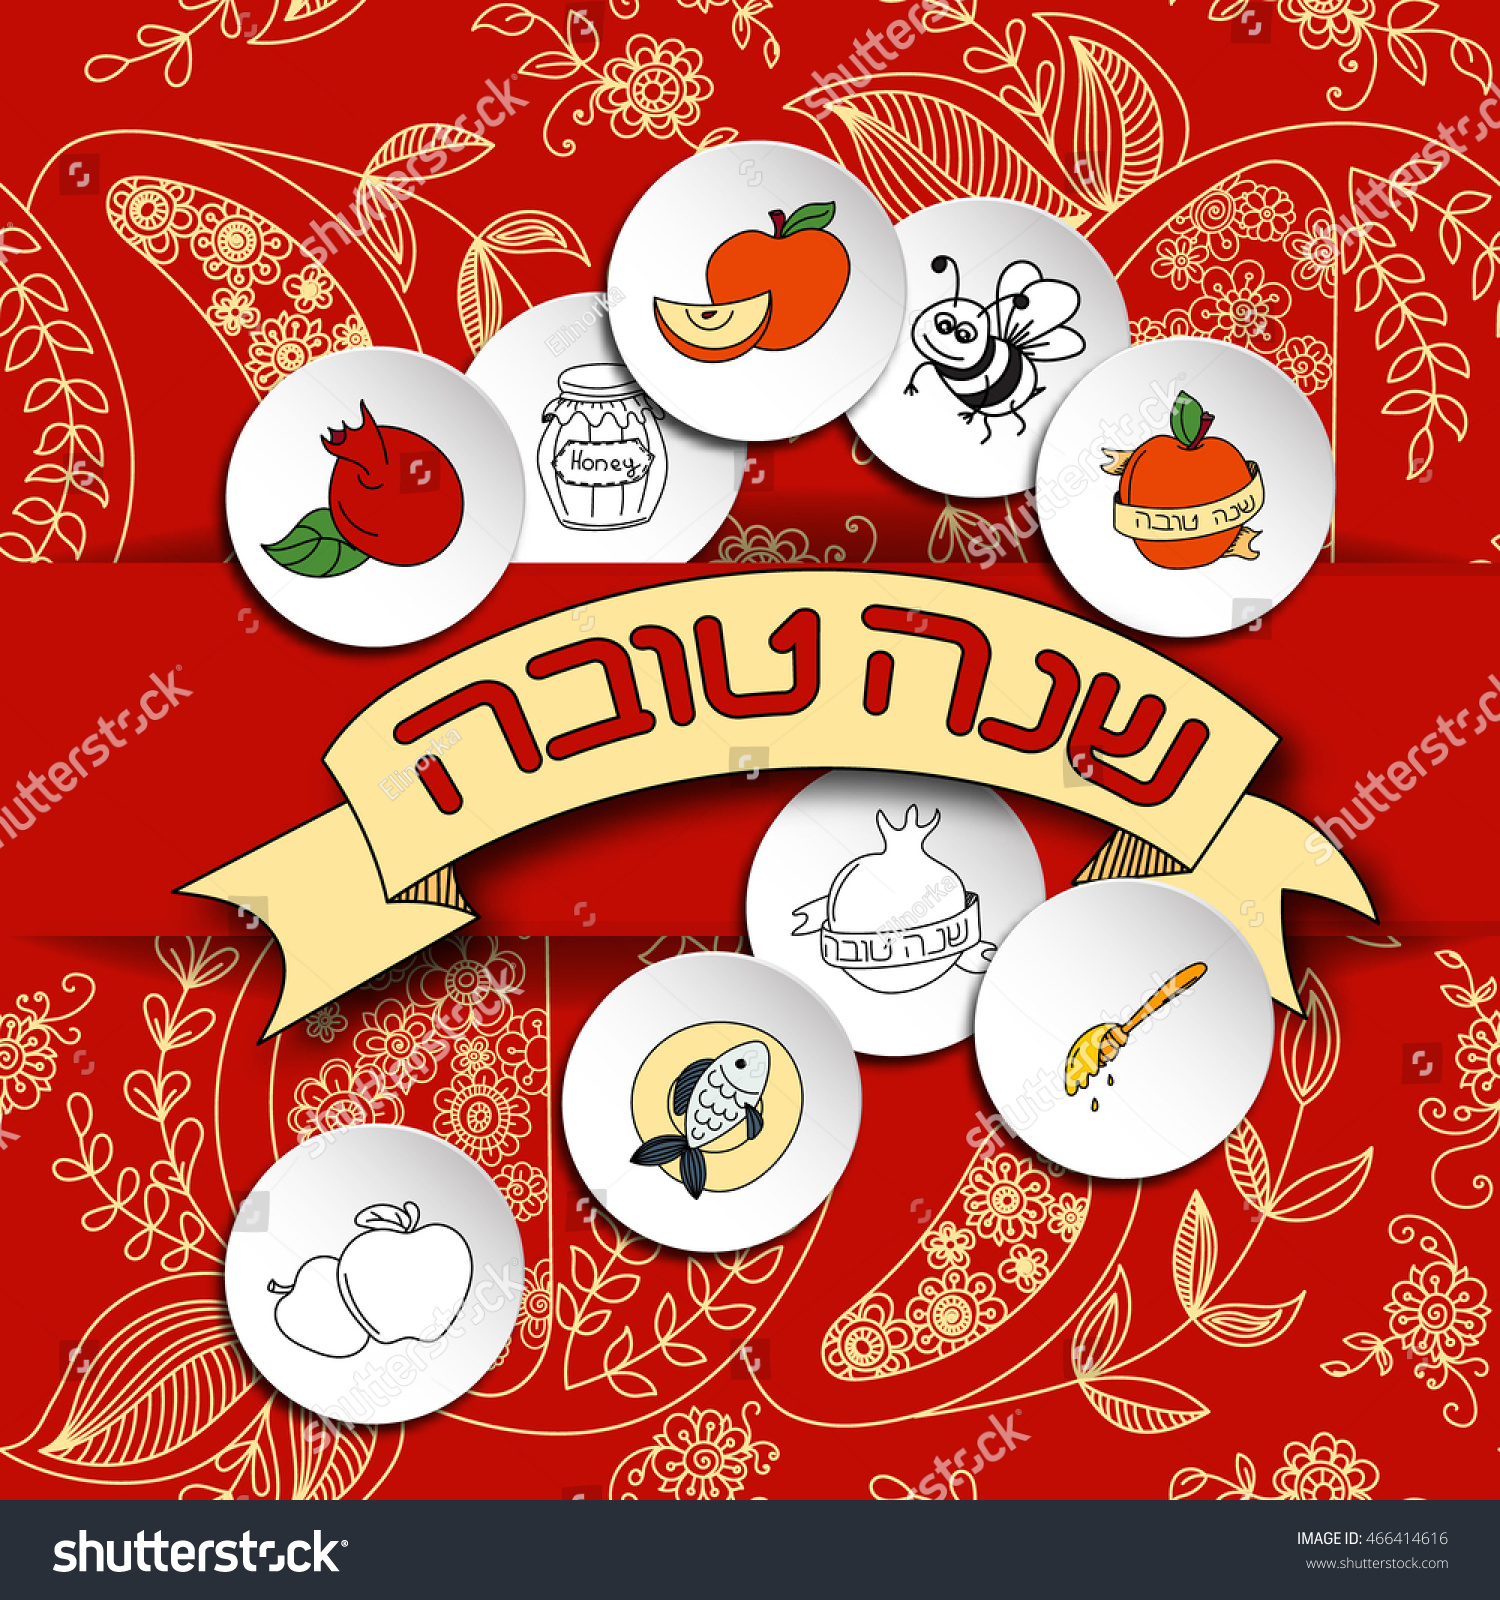 Rosh hashanah jewish new year greeting stock illustration rosh hashanah jewish new year greeting card hebrew text happy new year kristyandbryce Image collections